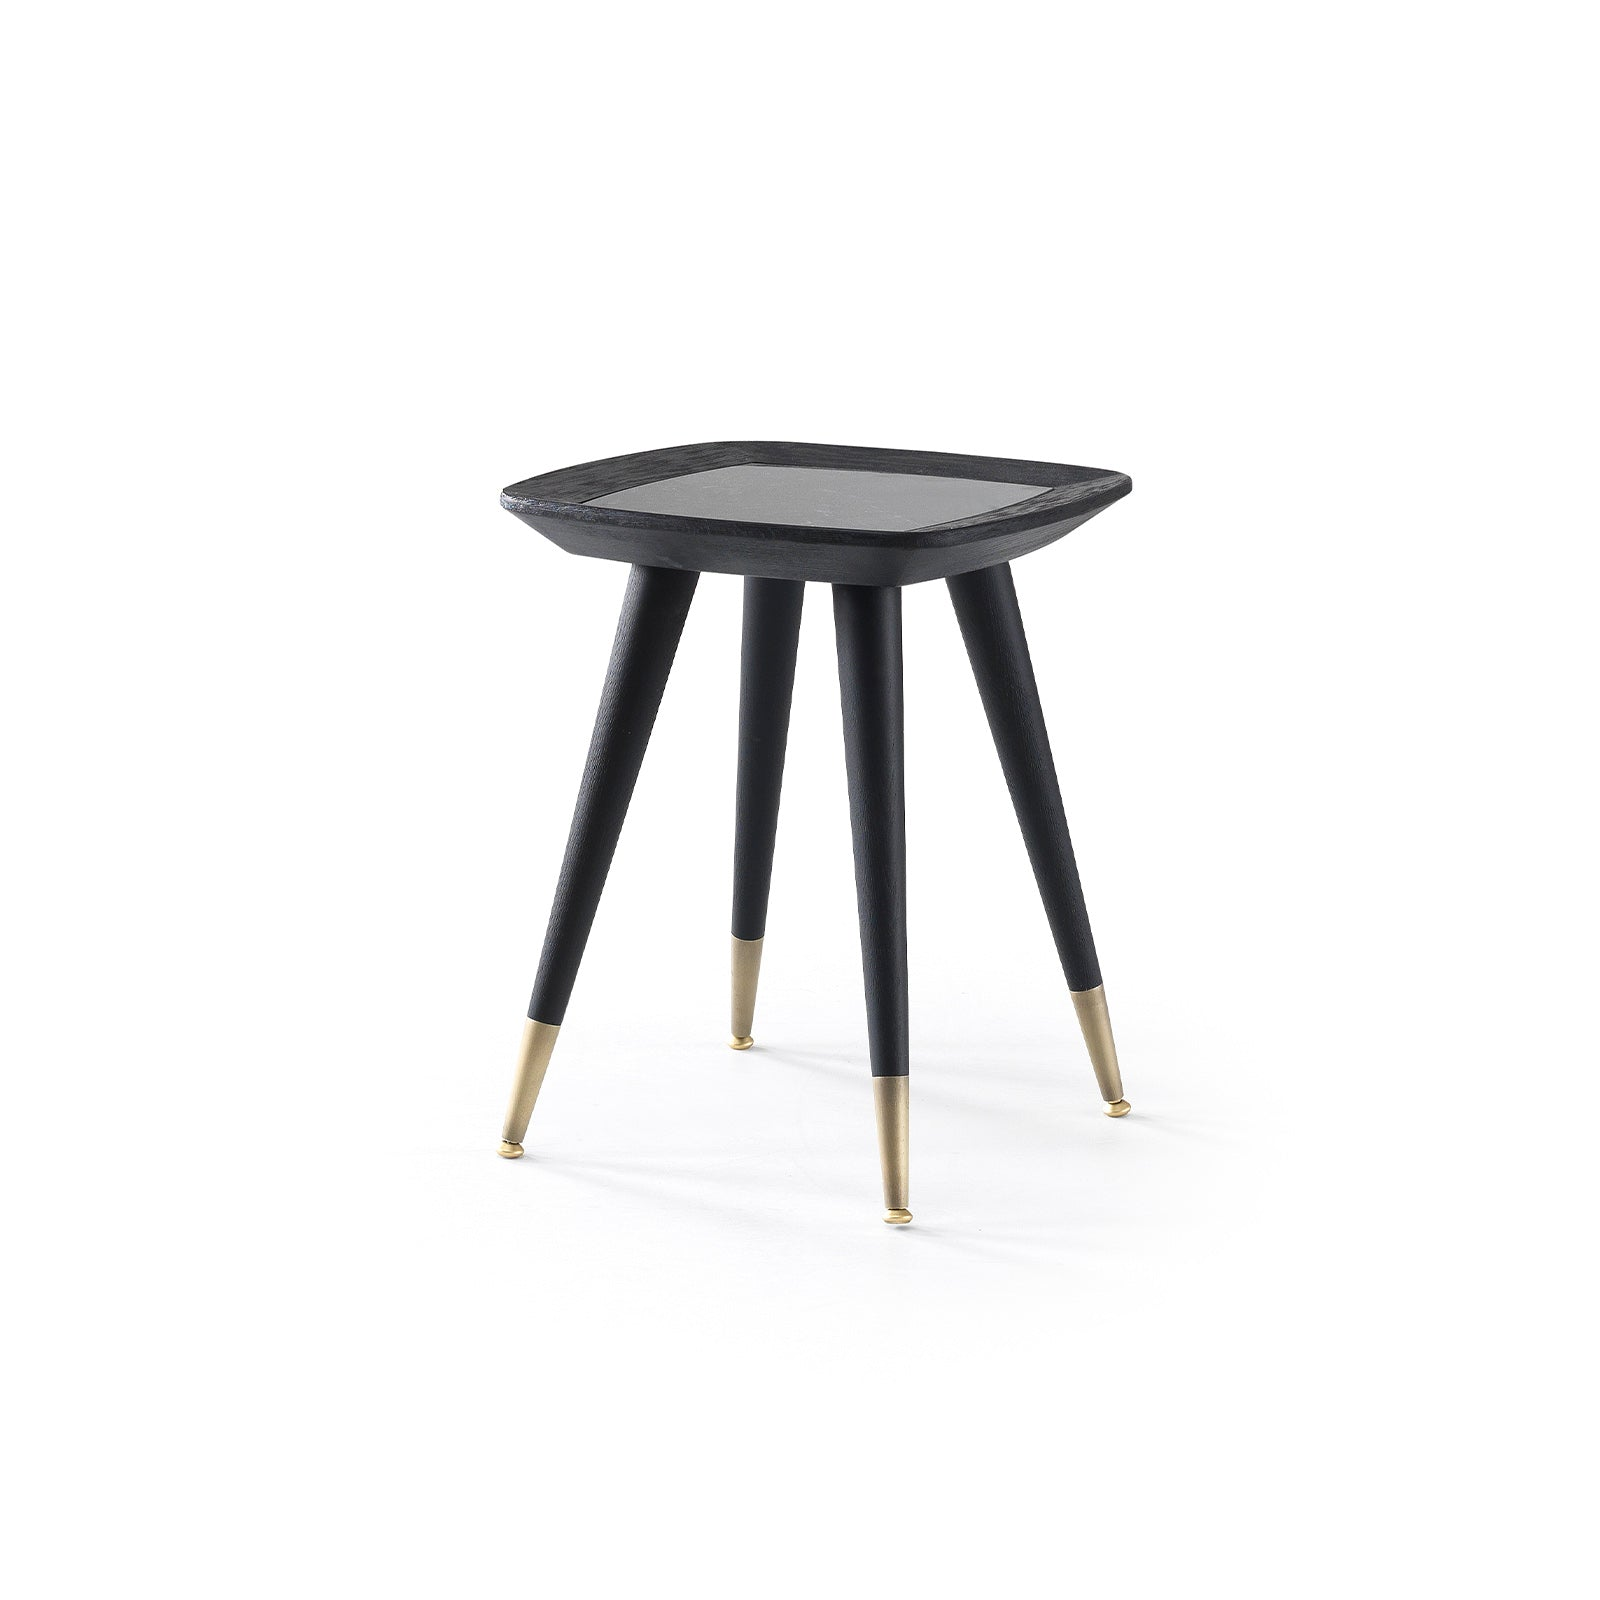 Pre-Order 40 days delivery Bug side table  Table BUG-Side -  اطلب مسبقًا 60 يومًا للتوصيل طاولة جانبية بقّ - Shop Online Furniture and Home Decor Store in Dubai, UAE at ebarza